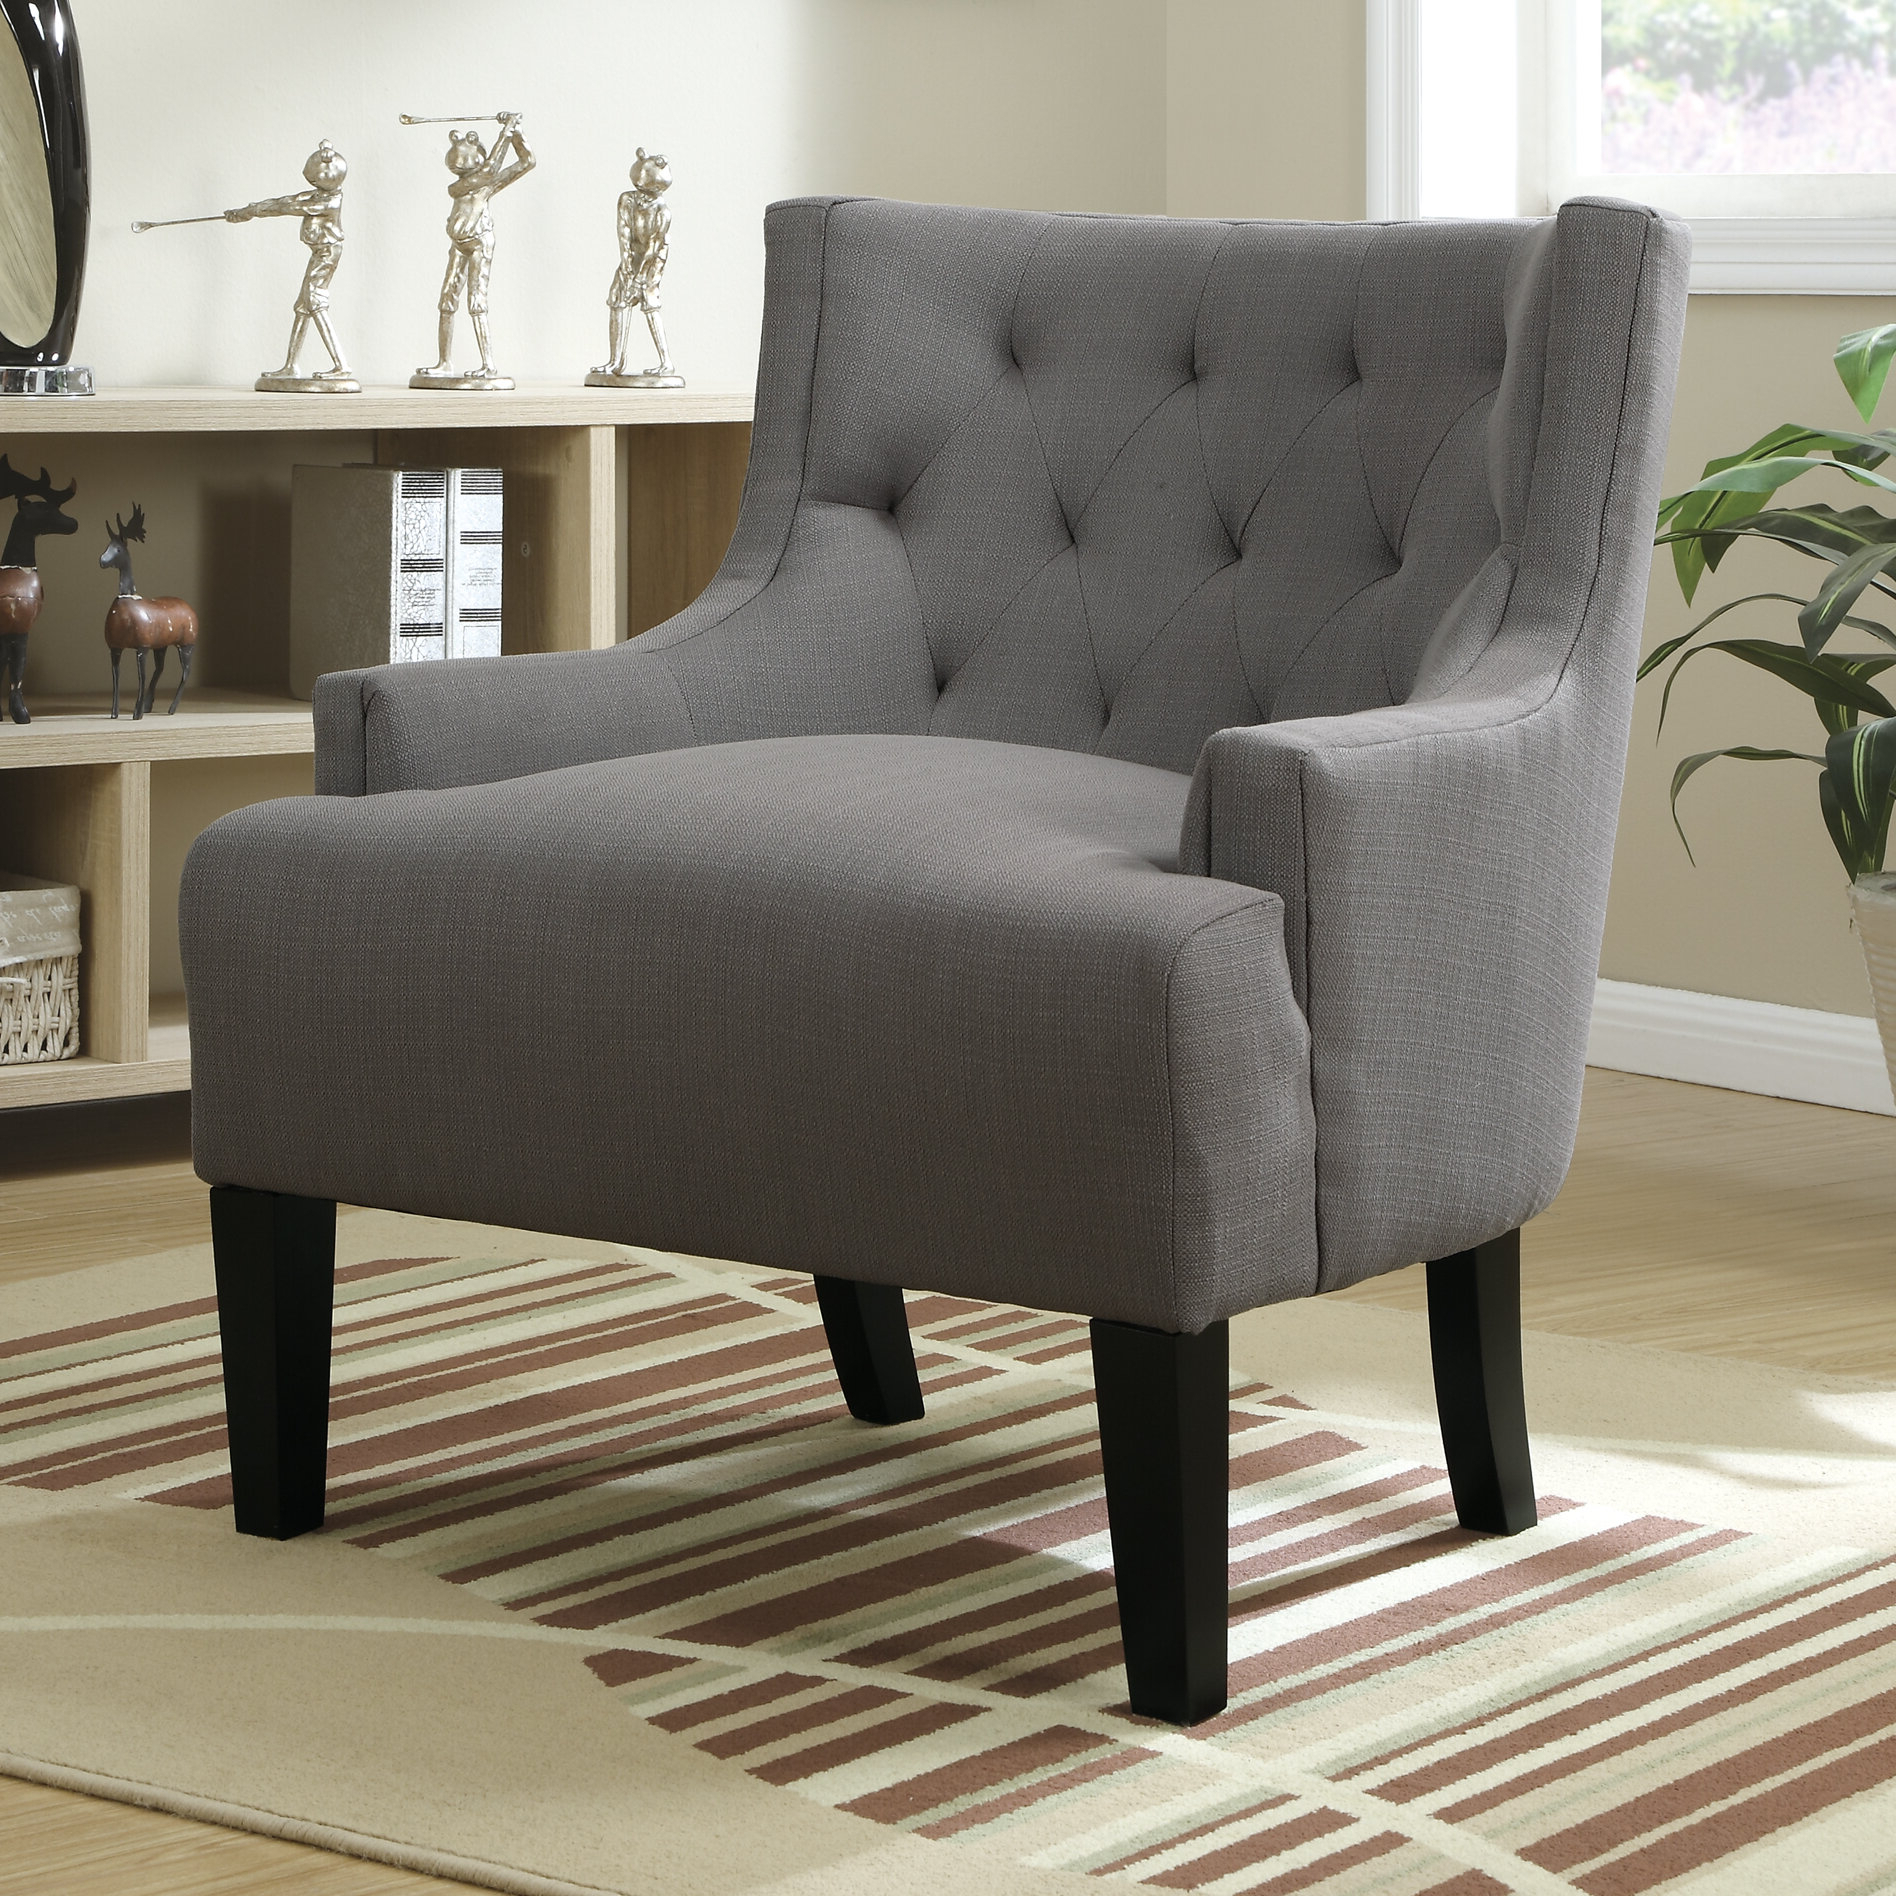 Hemphill Wingback Chair For Well Known Andover Wingback Chairs (View 9 of 20)